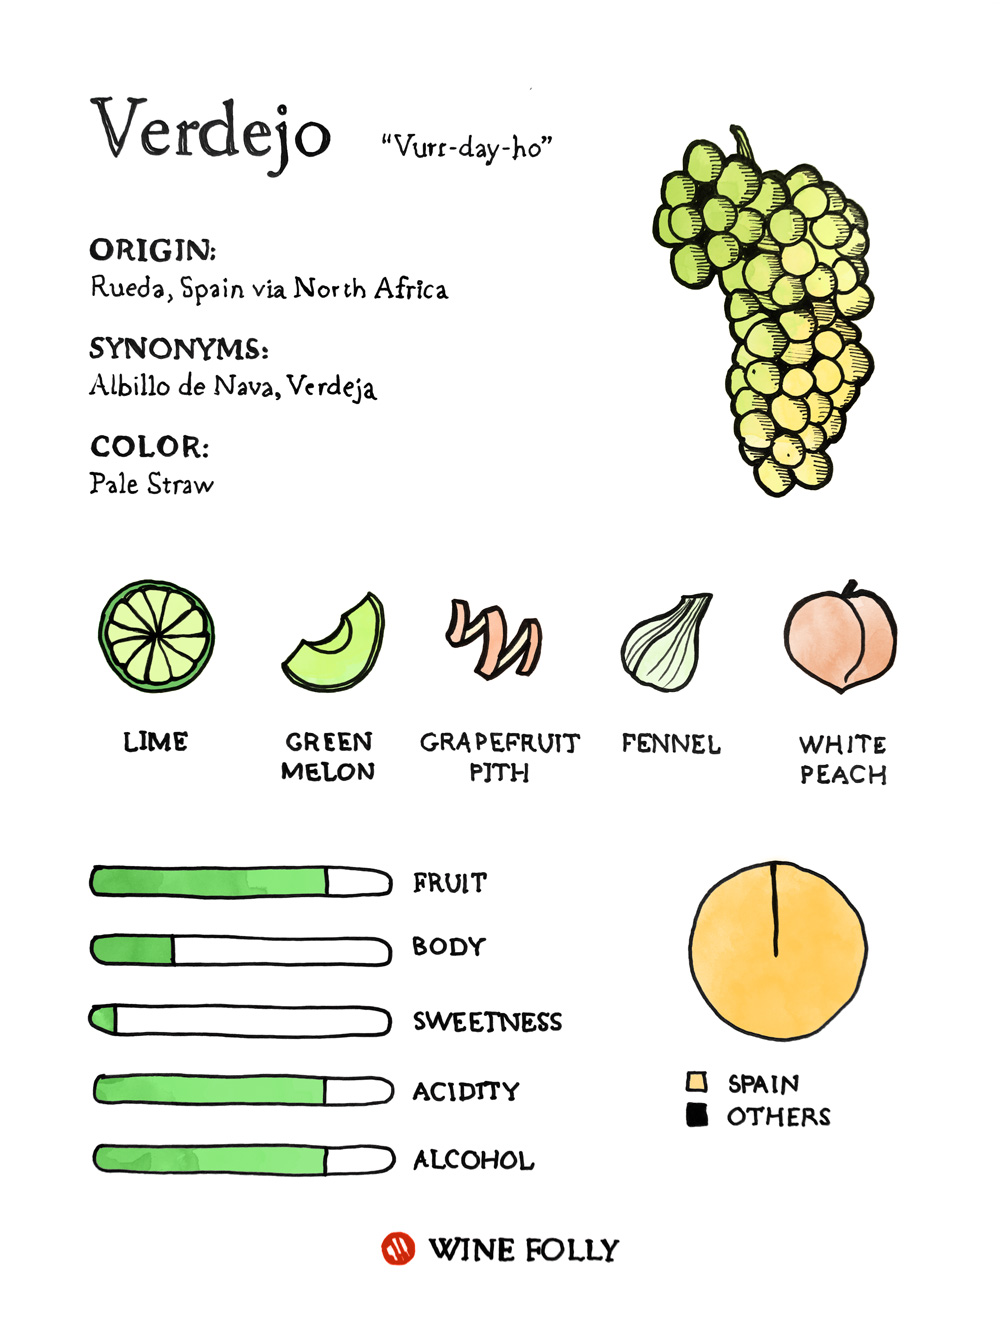 Verdejo Taste Profile illustration by Wine Folly